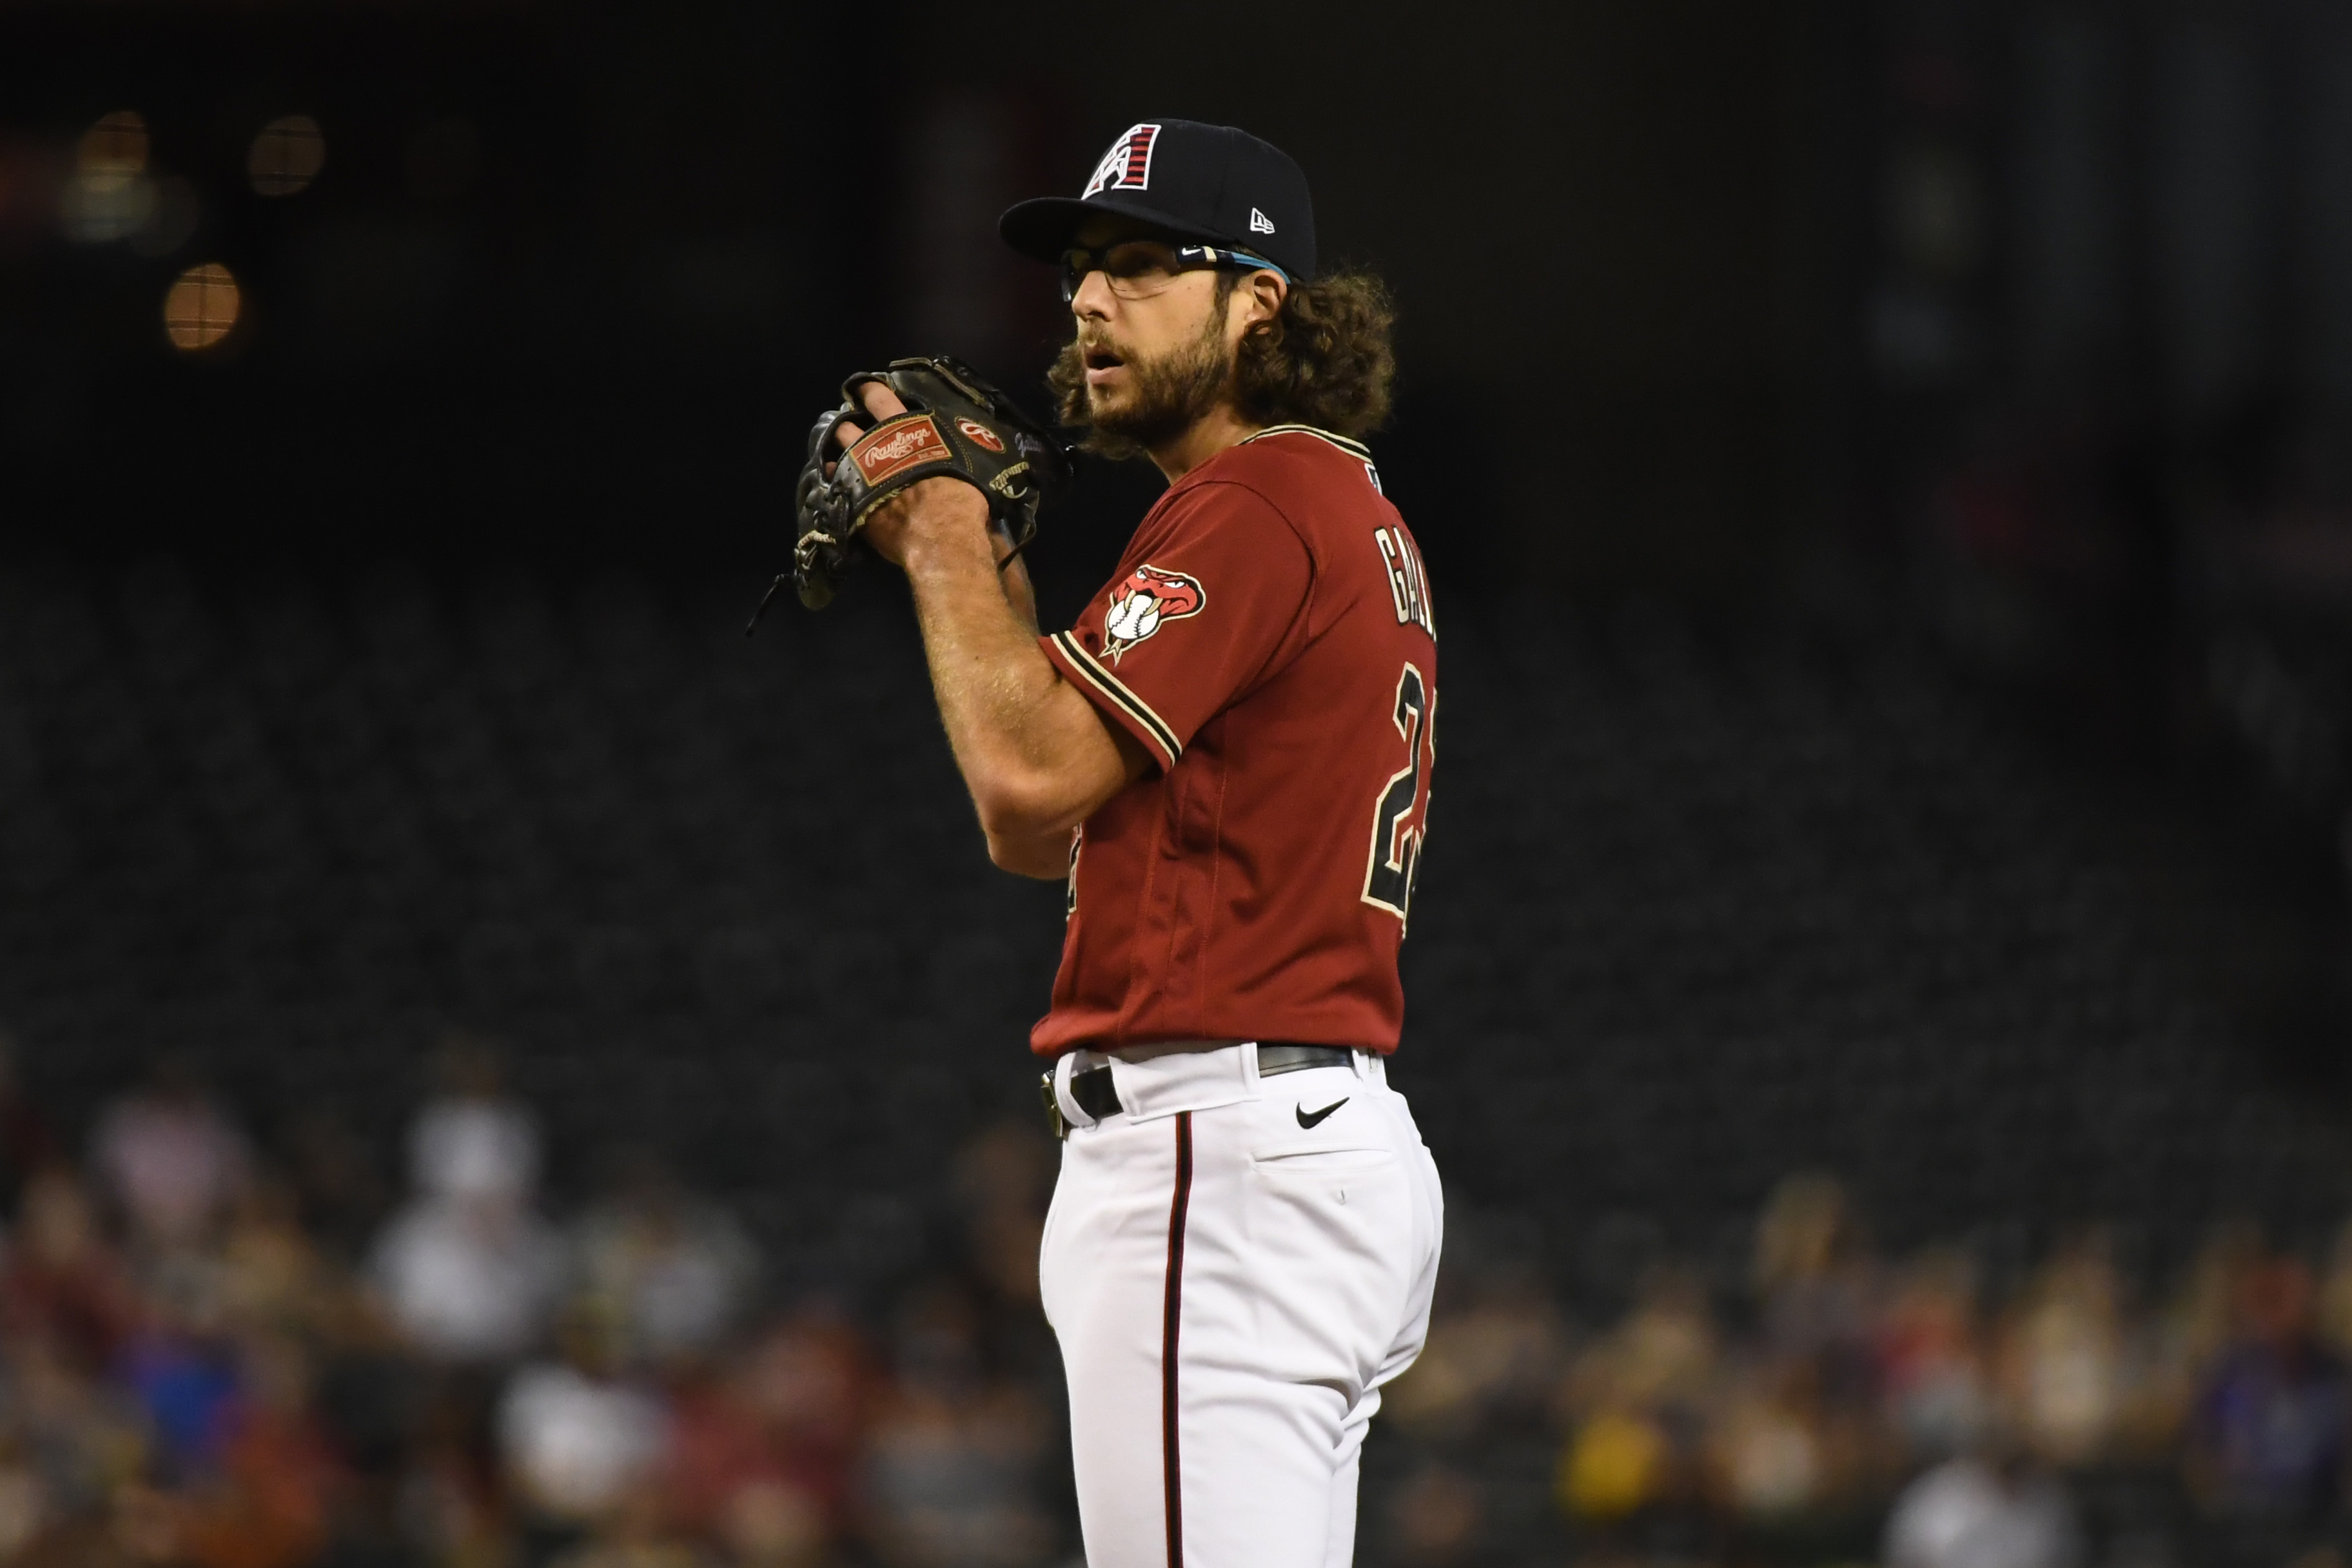 Zac Gallen #23 of the Arizona Diamondbacks delivers a pitch against the San Francisco Giants at Chase Field on July 02, 2021 in Phoenix, Arizona.